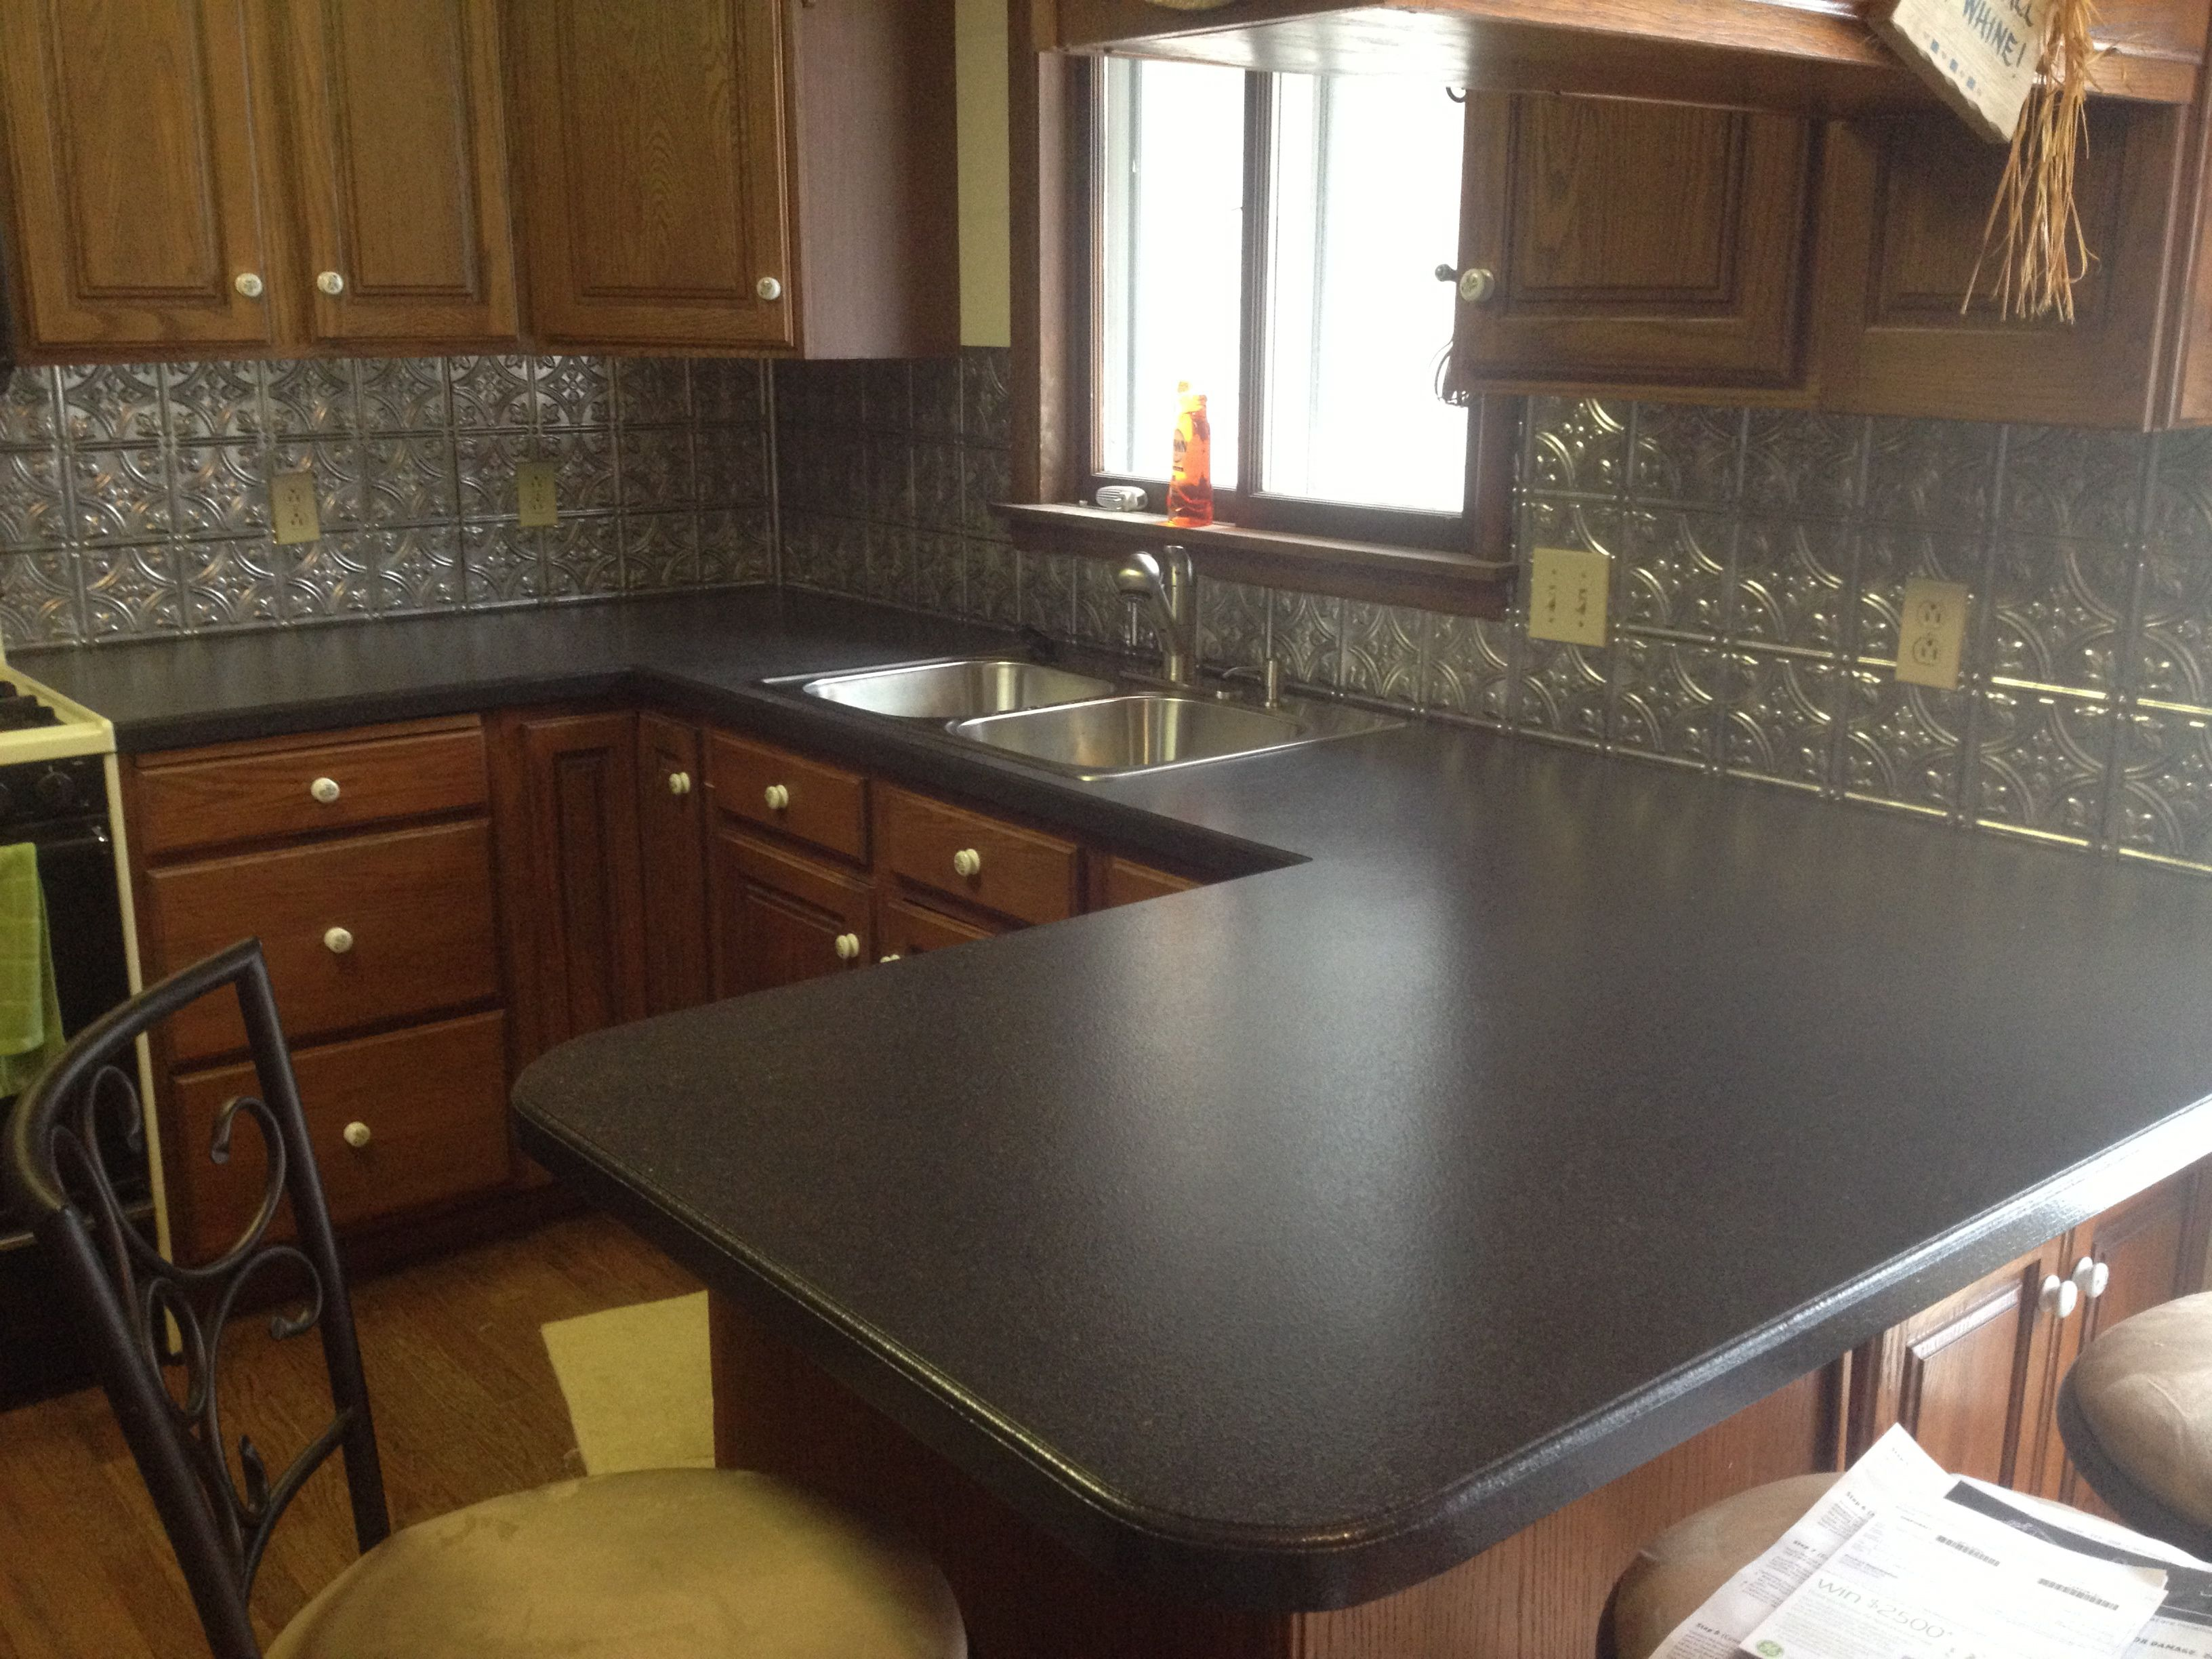 Corian Marble Countertops Black Corian Vs Granite Countertop With Tile Backsplash